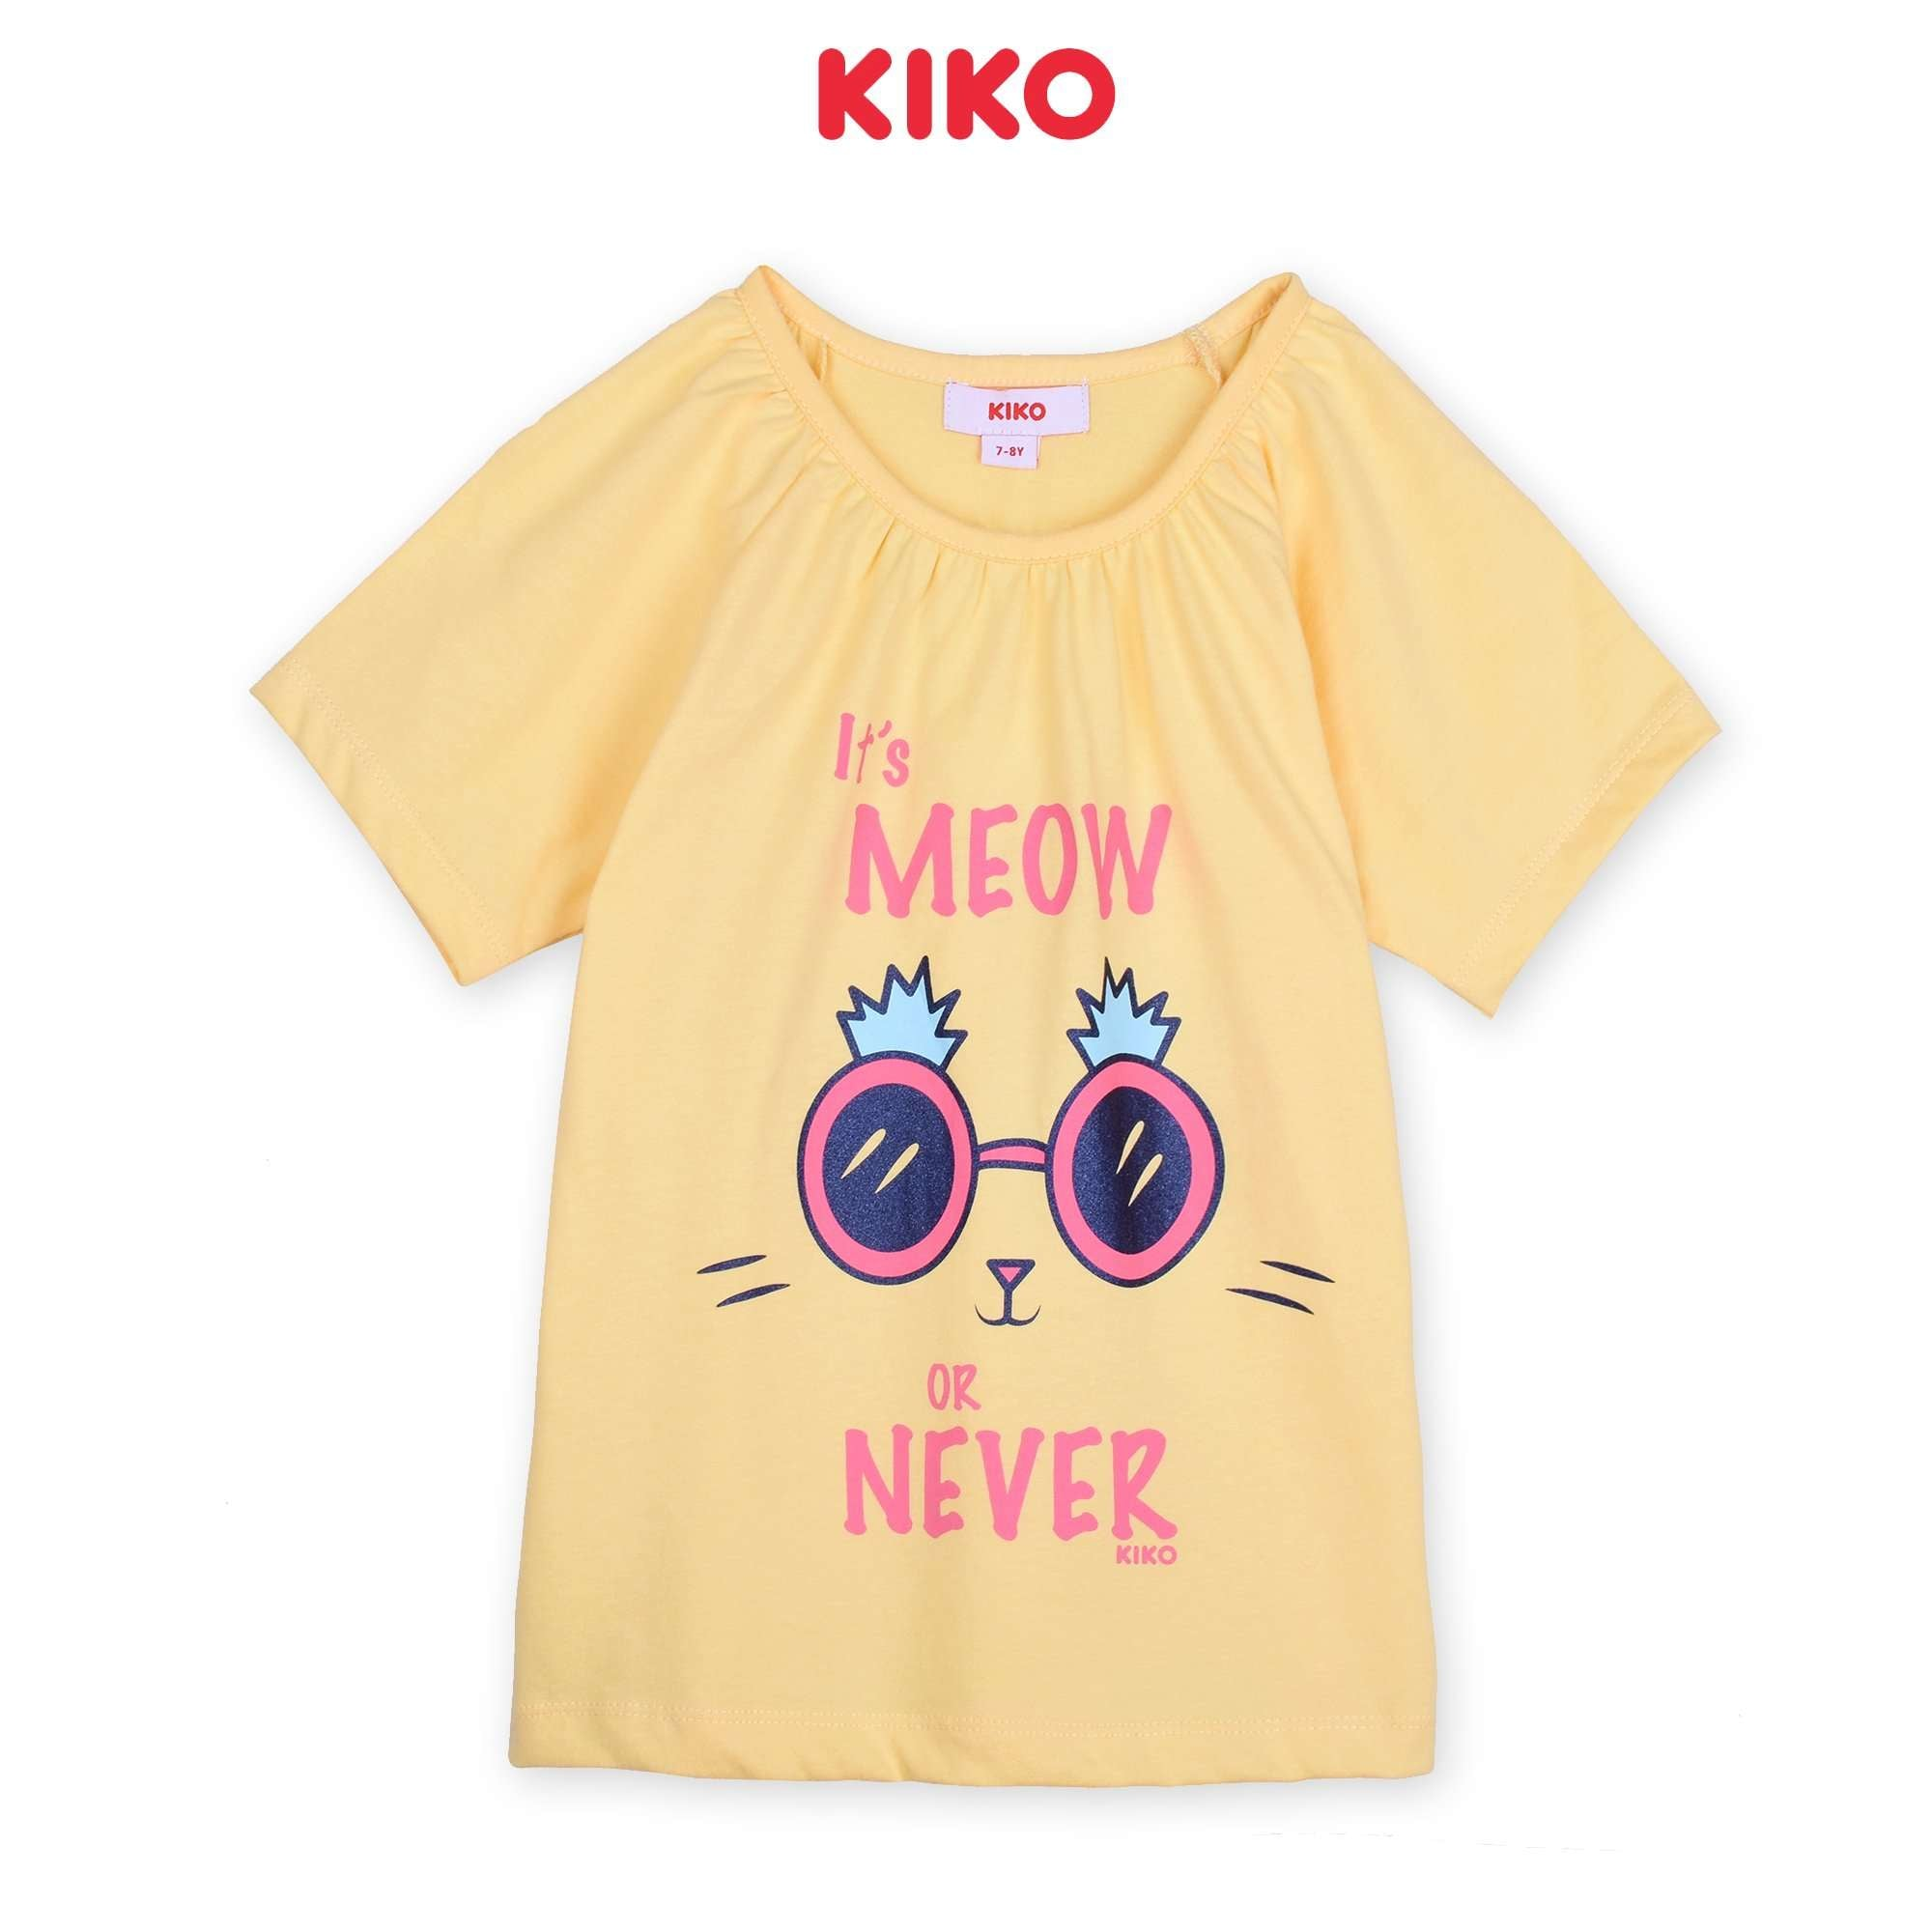 KIKO Girl Short Sleeve Tee - Yellow K926103-1136-Y5 : Buy KIKO online at CMG.MY